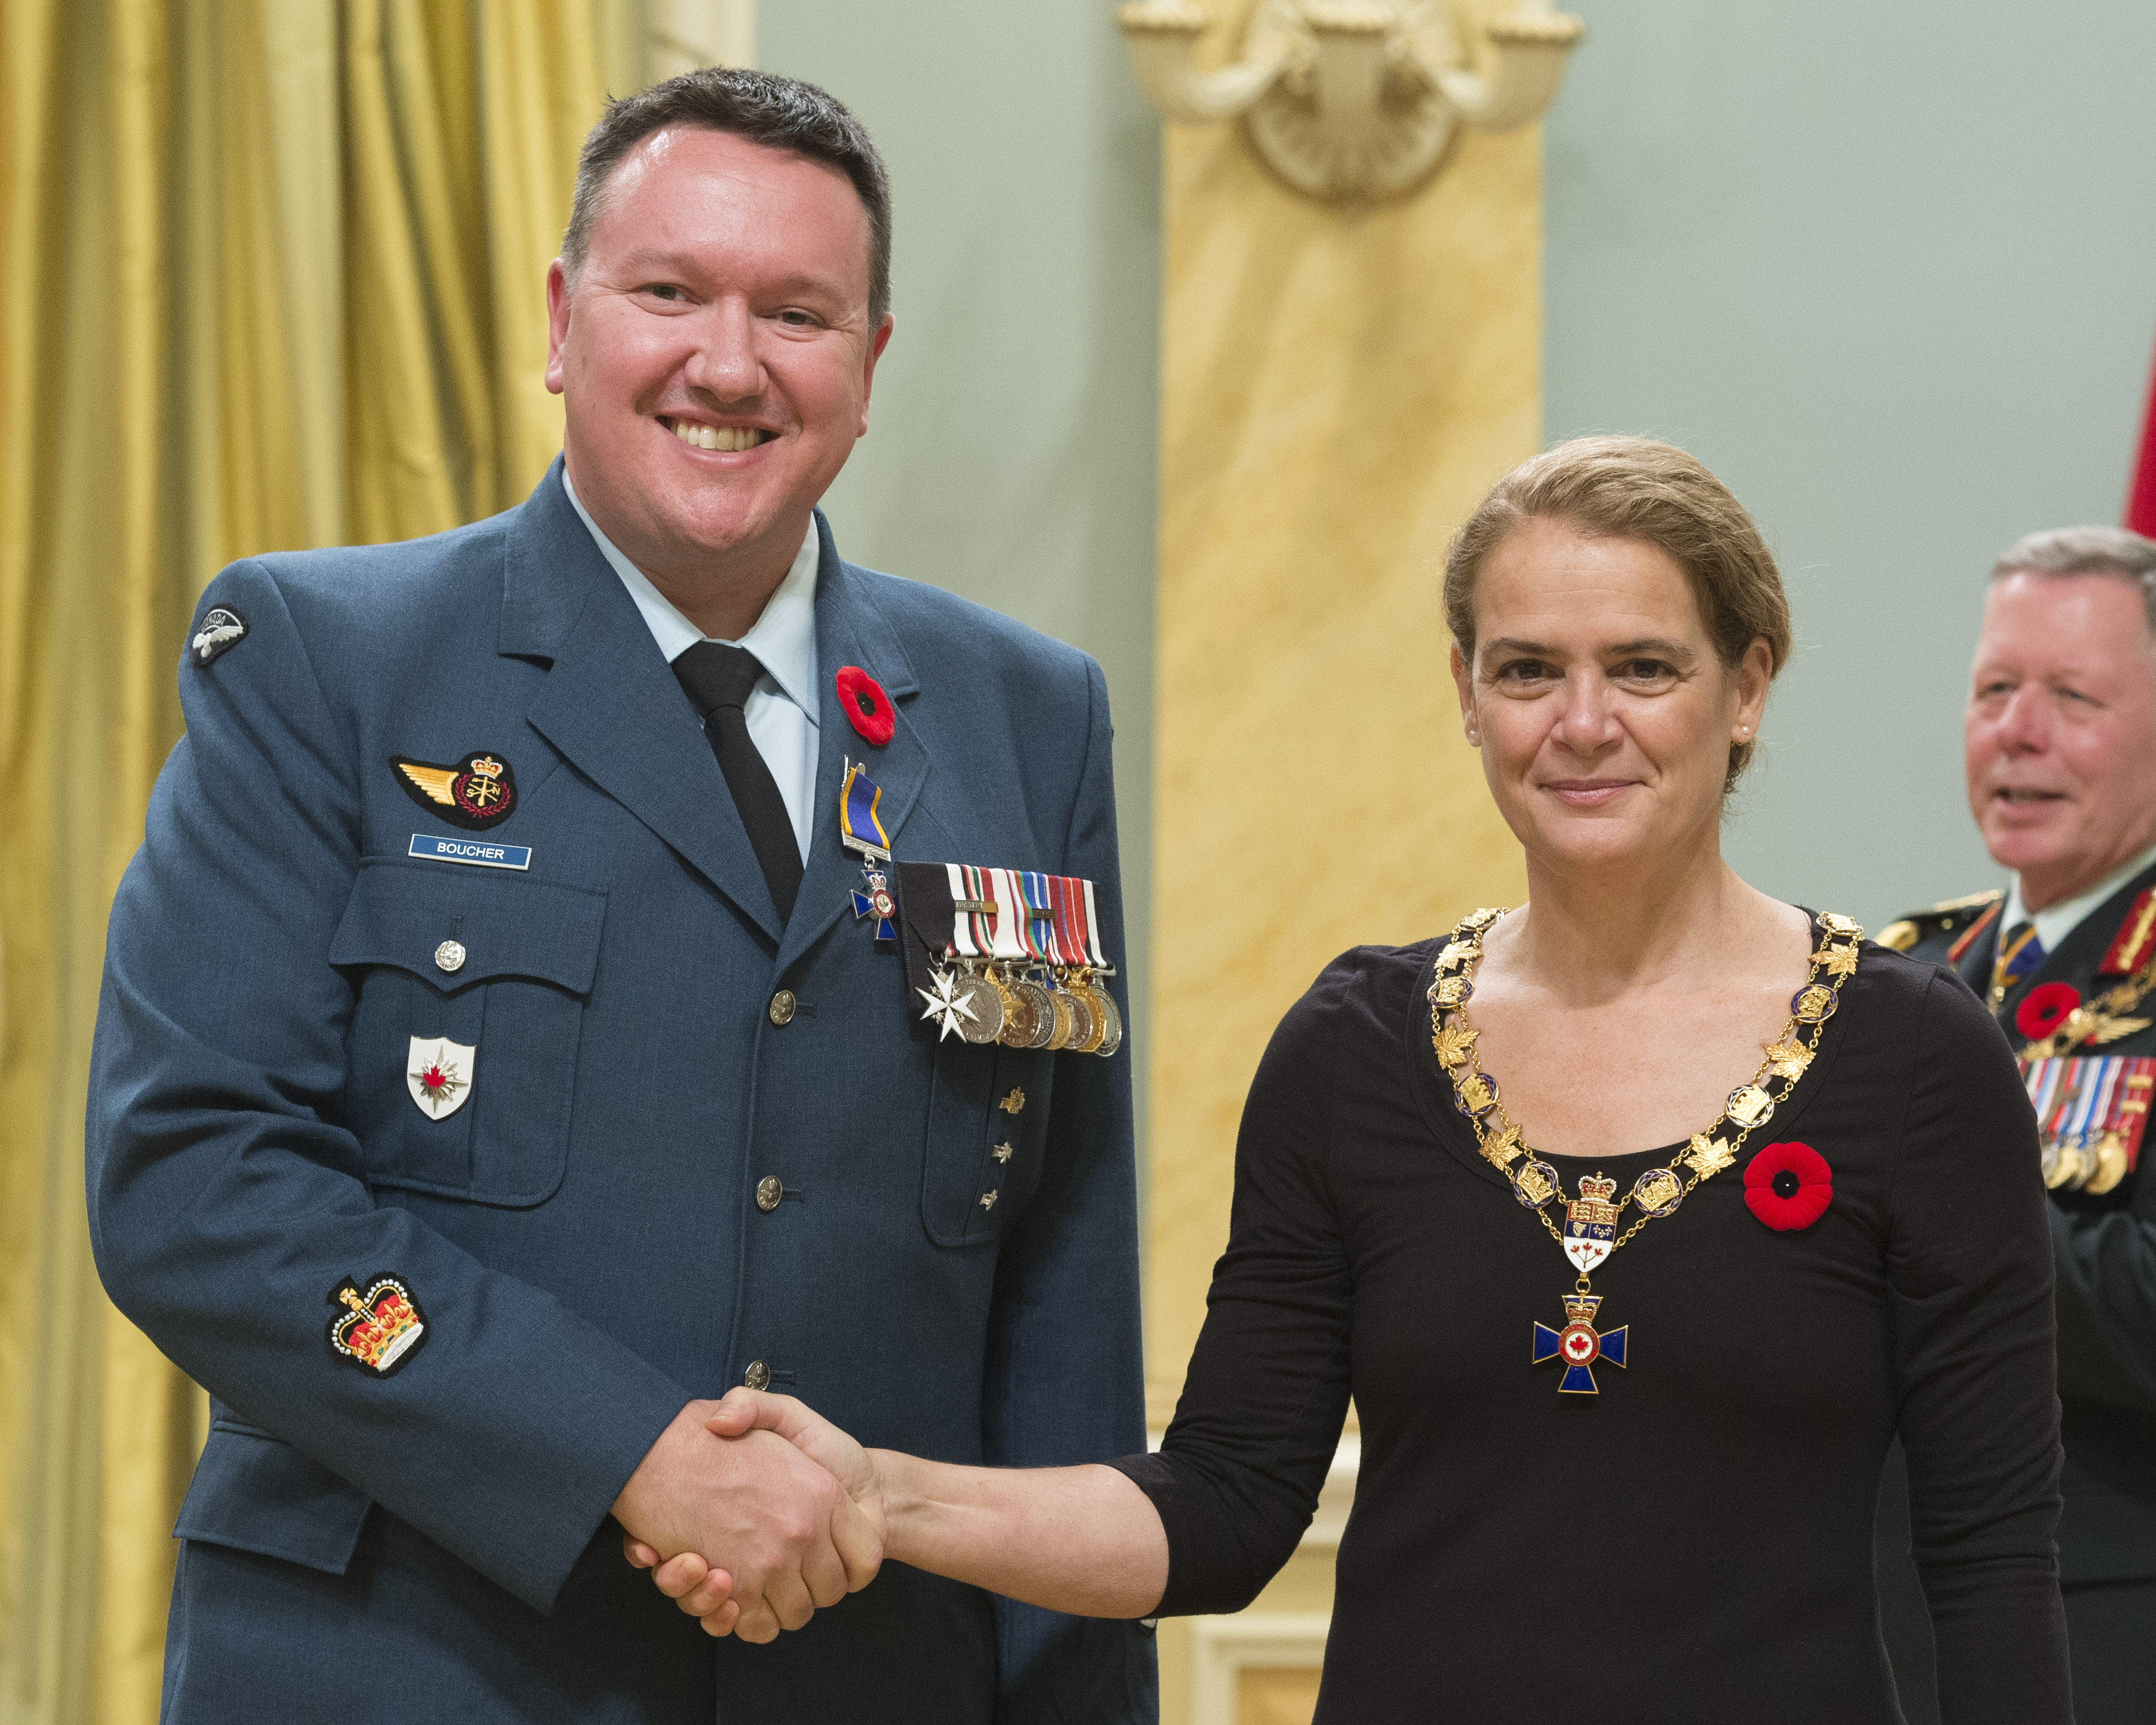 Governor General and Commander-in-Chief of Canada Julie Payette inducts Warrant Officer Marc Joseph Luc Boucher, Canadian Forces Intelligence Command Headquarters, Ottawa, Ontario, into the Order of Military Merit at Rideau Hall on November 10, 2017. PHOTO: Sergeant Johanie Maheu, Rideau Hall © OSGG, GG05-2017-0395-032